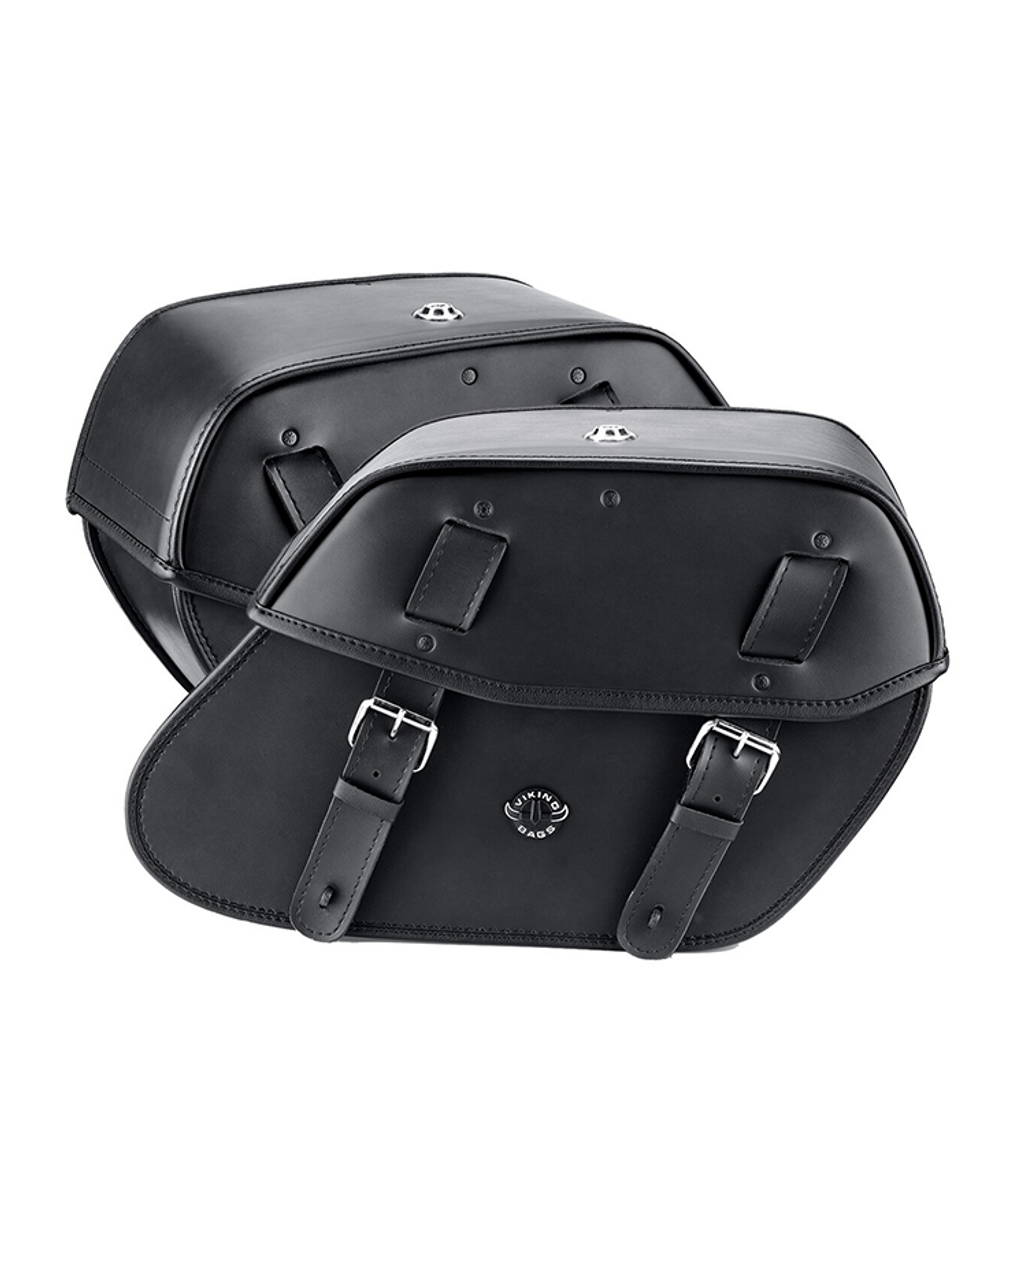 Viking Odin Medium Motorcycle Saddlebags For Harley Softail Heritage FLSTC Both Bags View